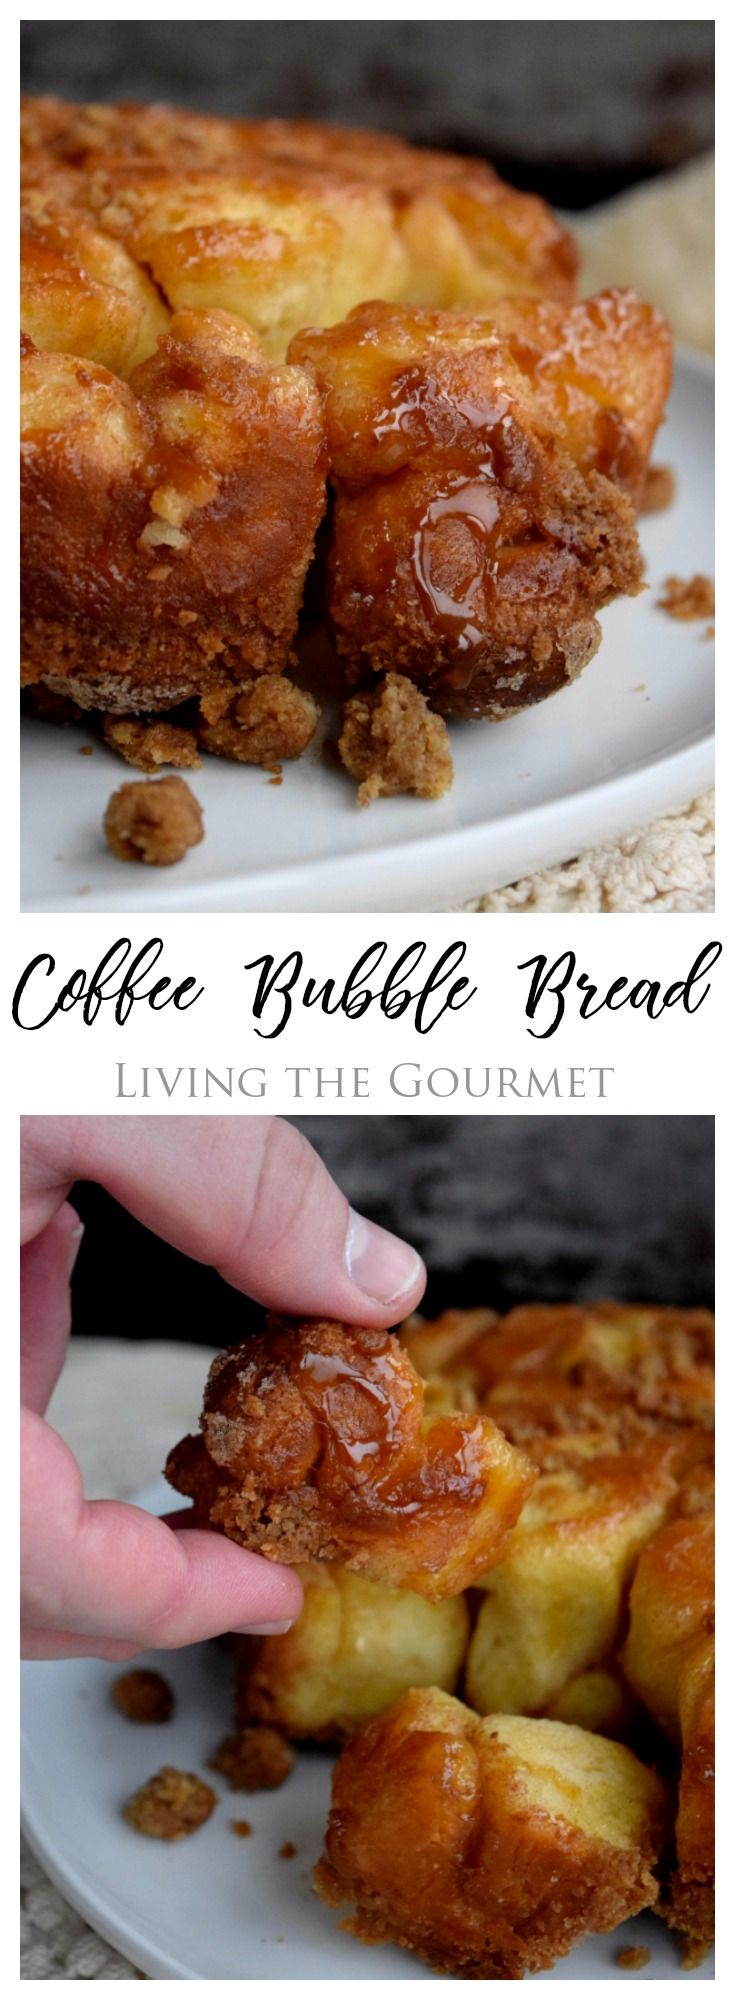 The mornings are getting chillier and the days are getting shorter, time to break out those cozy knit sweaters and get out baking game on. This Coffee Bubble Bread is a cross between coffee cake and monkey bread. It's sweet, sticky and perfect in the AM with your favorite cup of java.